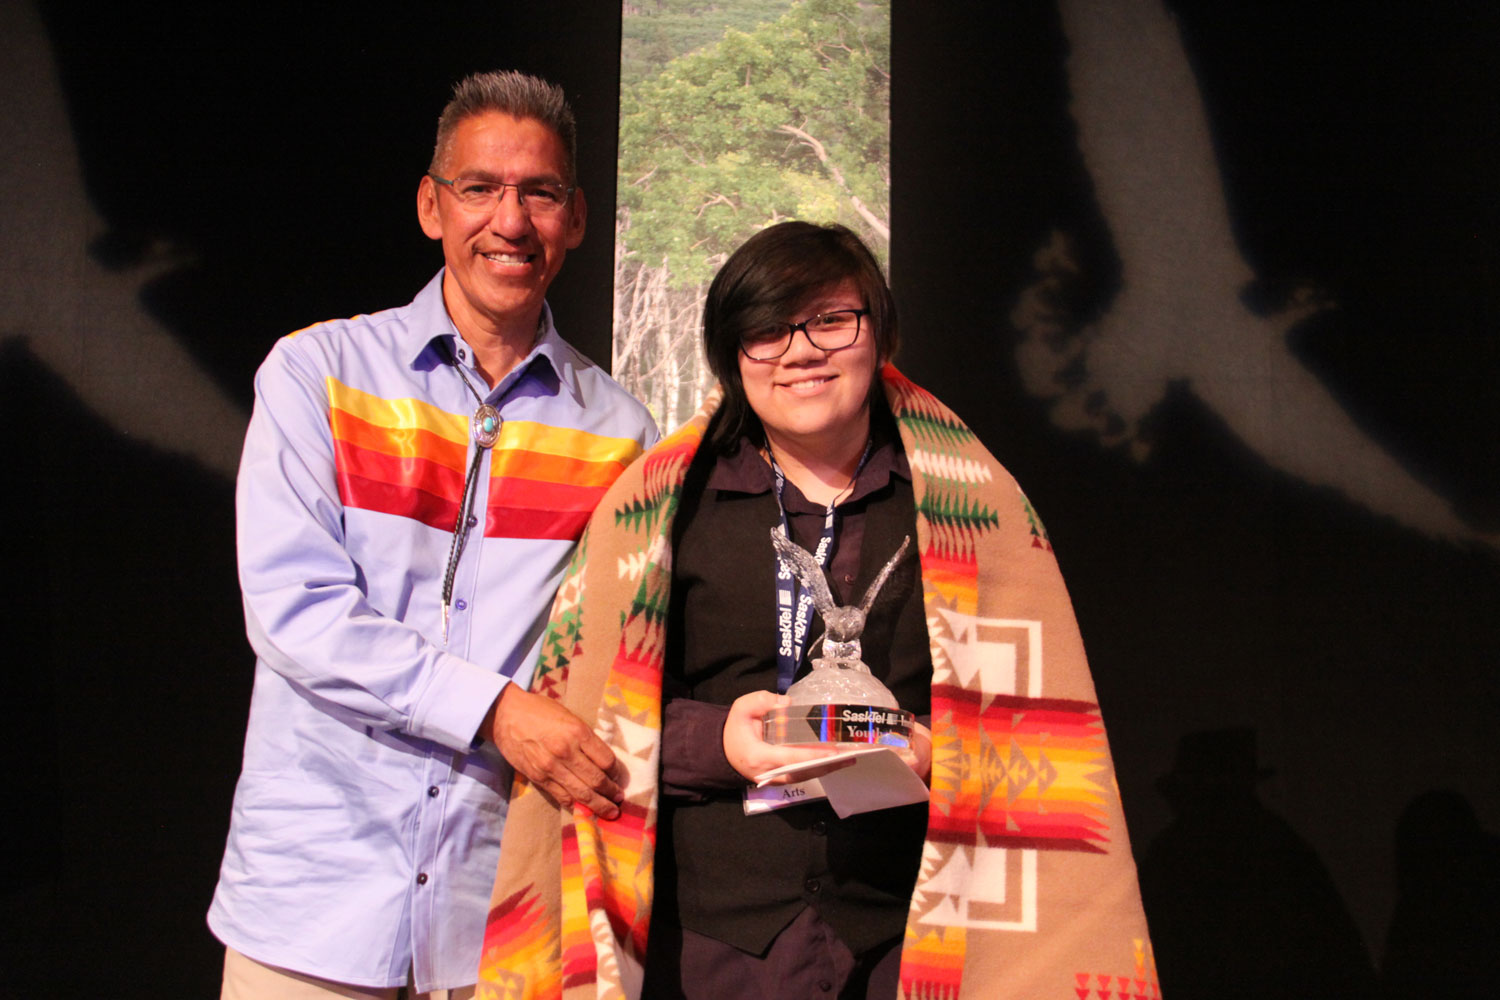 Lyle Daniels of Sask Building Trades presented the Fine/Performing Arts award to Aiyanna Glenister